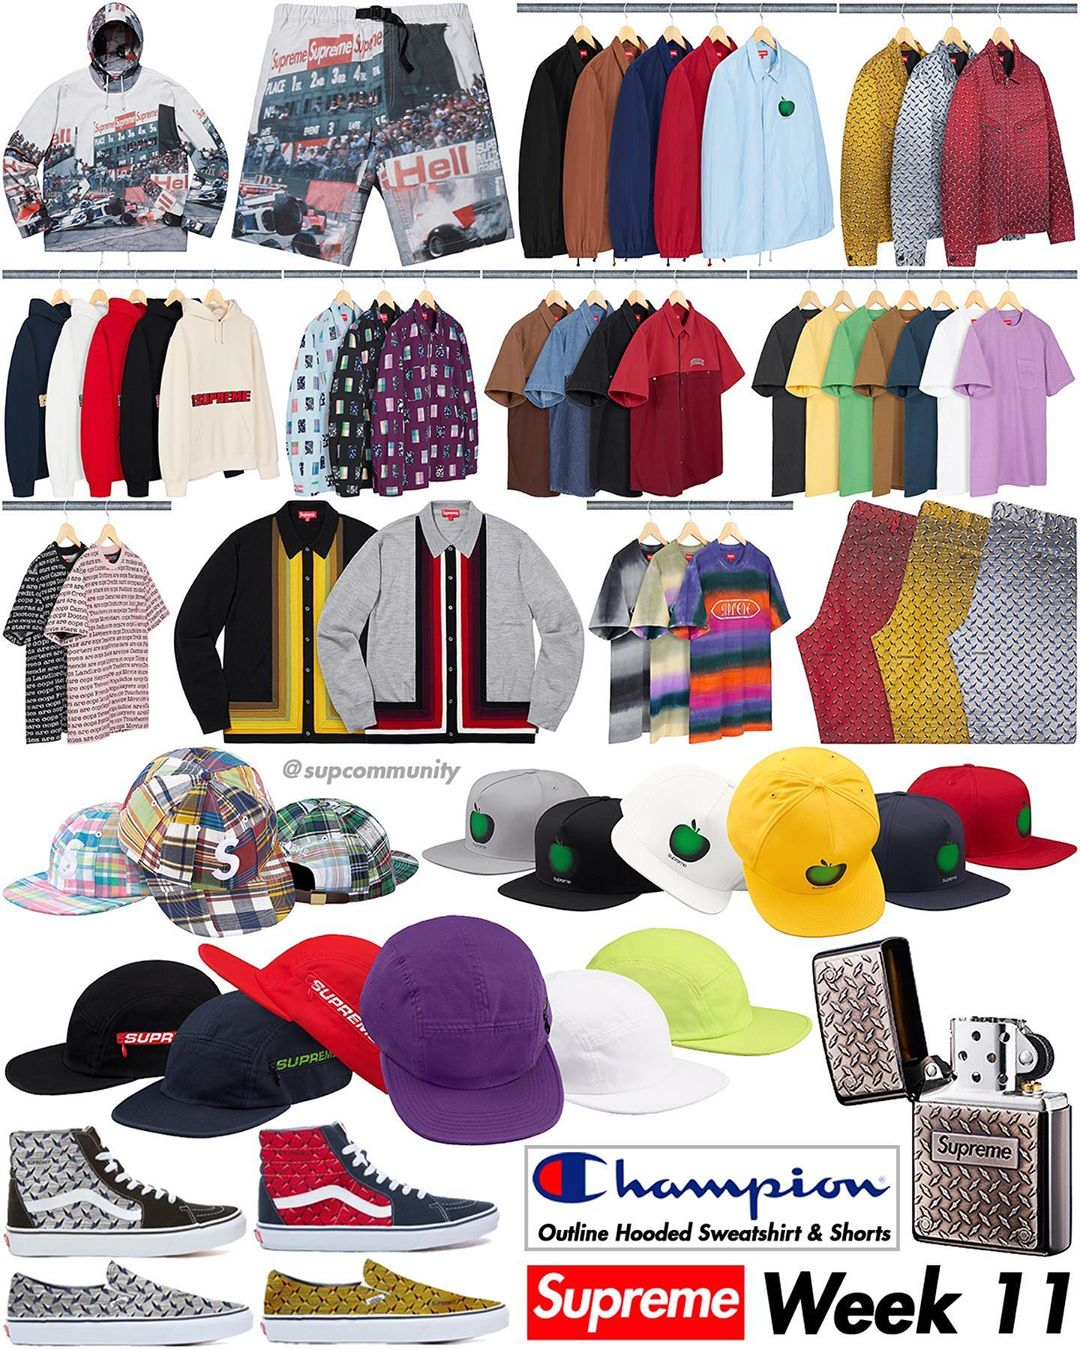 Supreme Week 11 Retail Prices and Droplist (SS19)